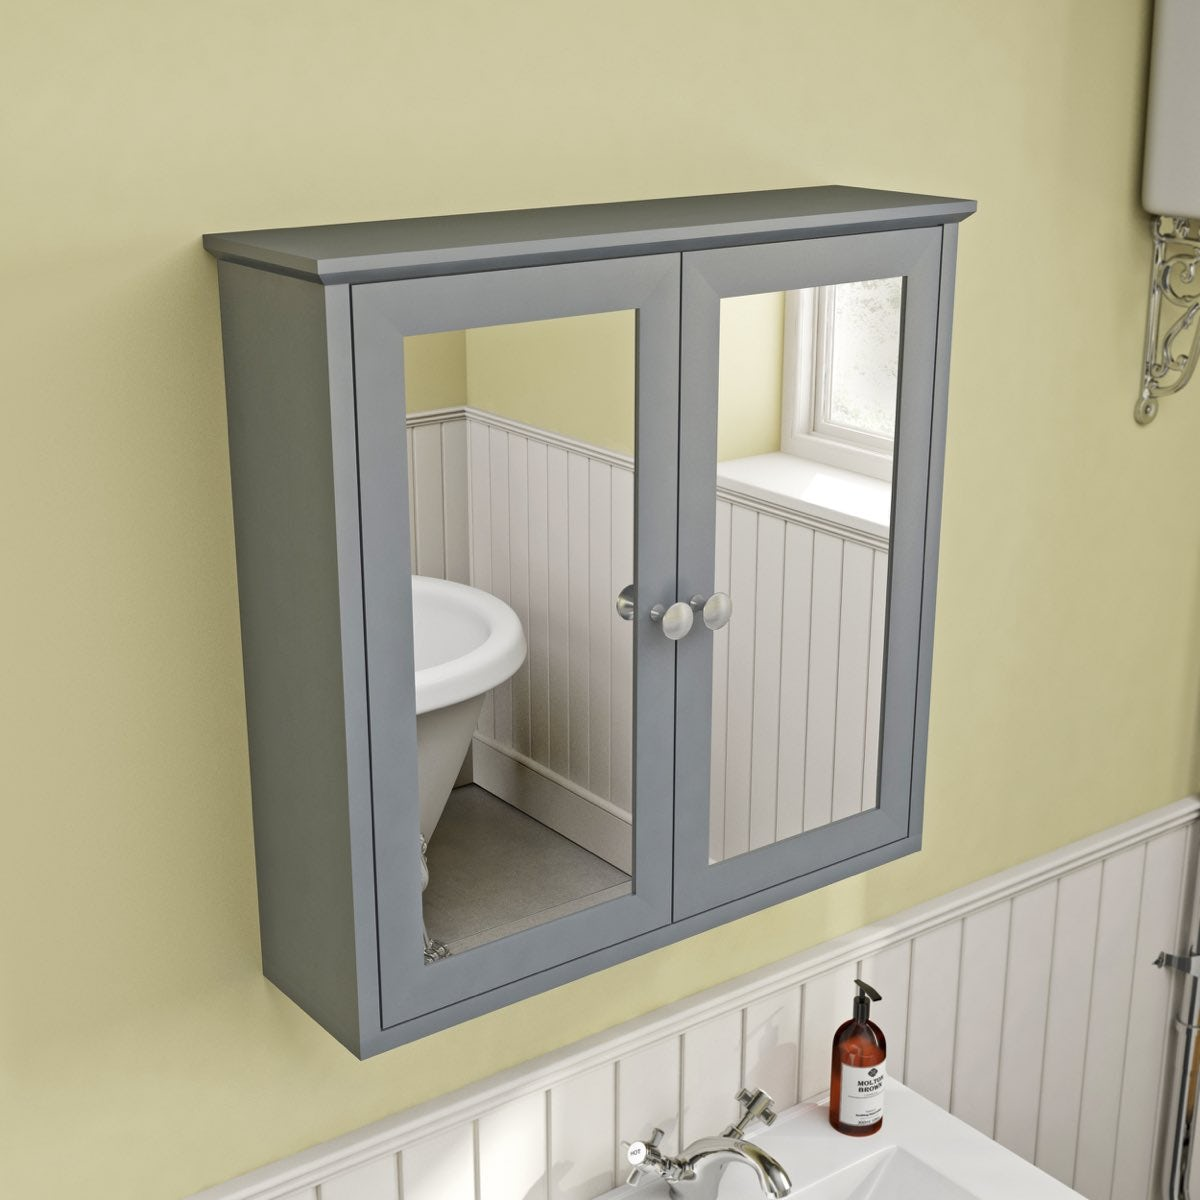 The bath co camberley satin grey wall hung mirror cabinet Bathroom cabinets gray